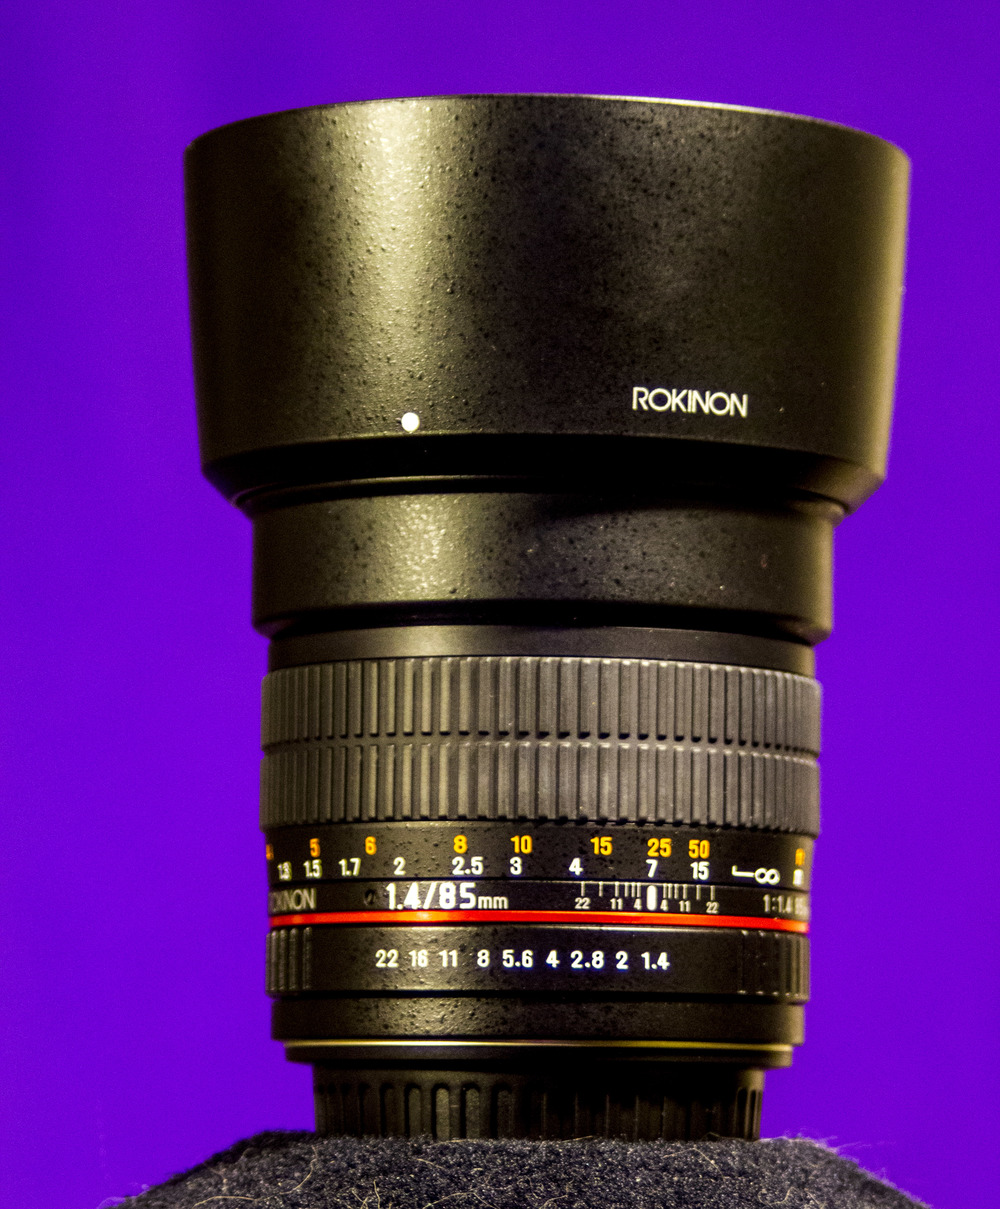 Rokinon 85mm f1.4 Great for portraits.